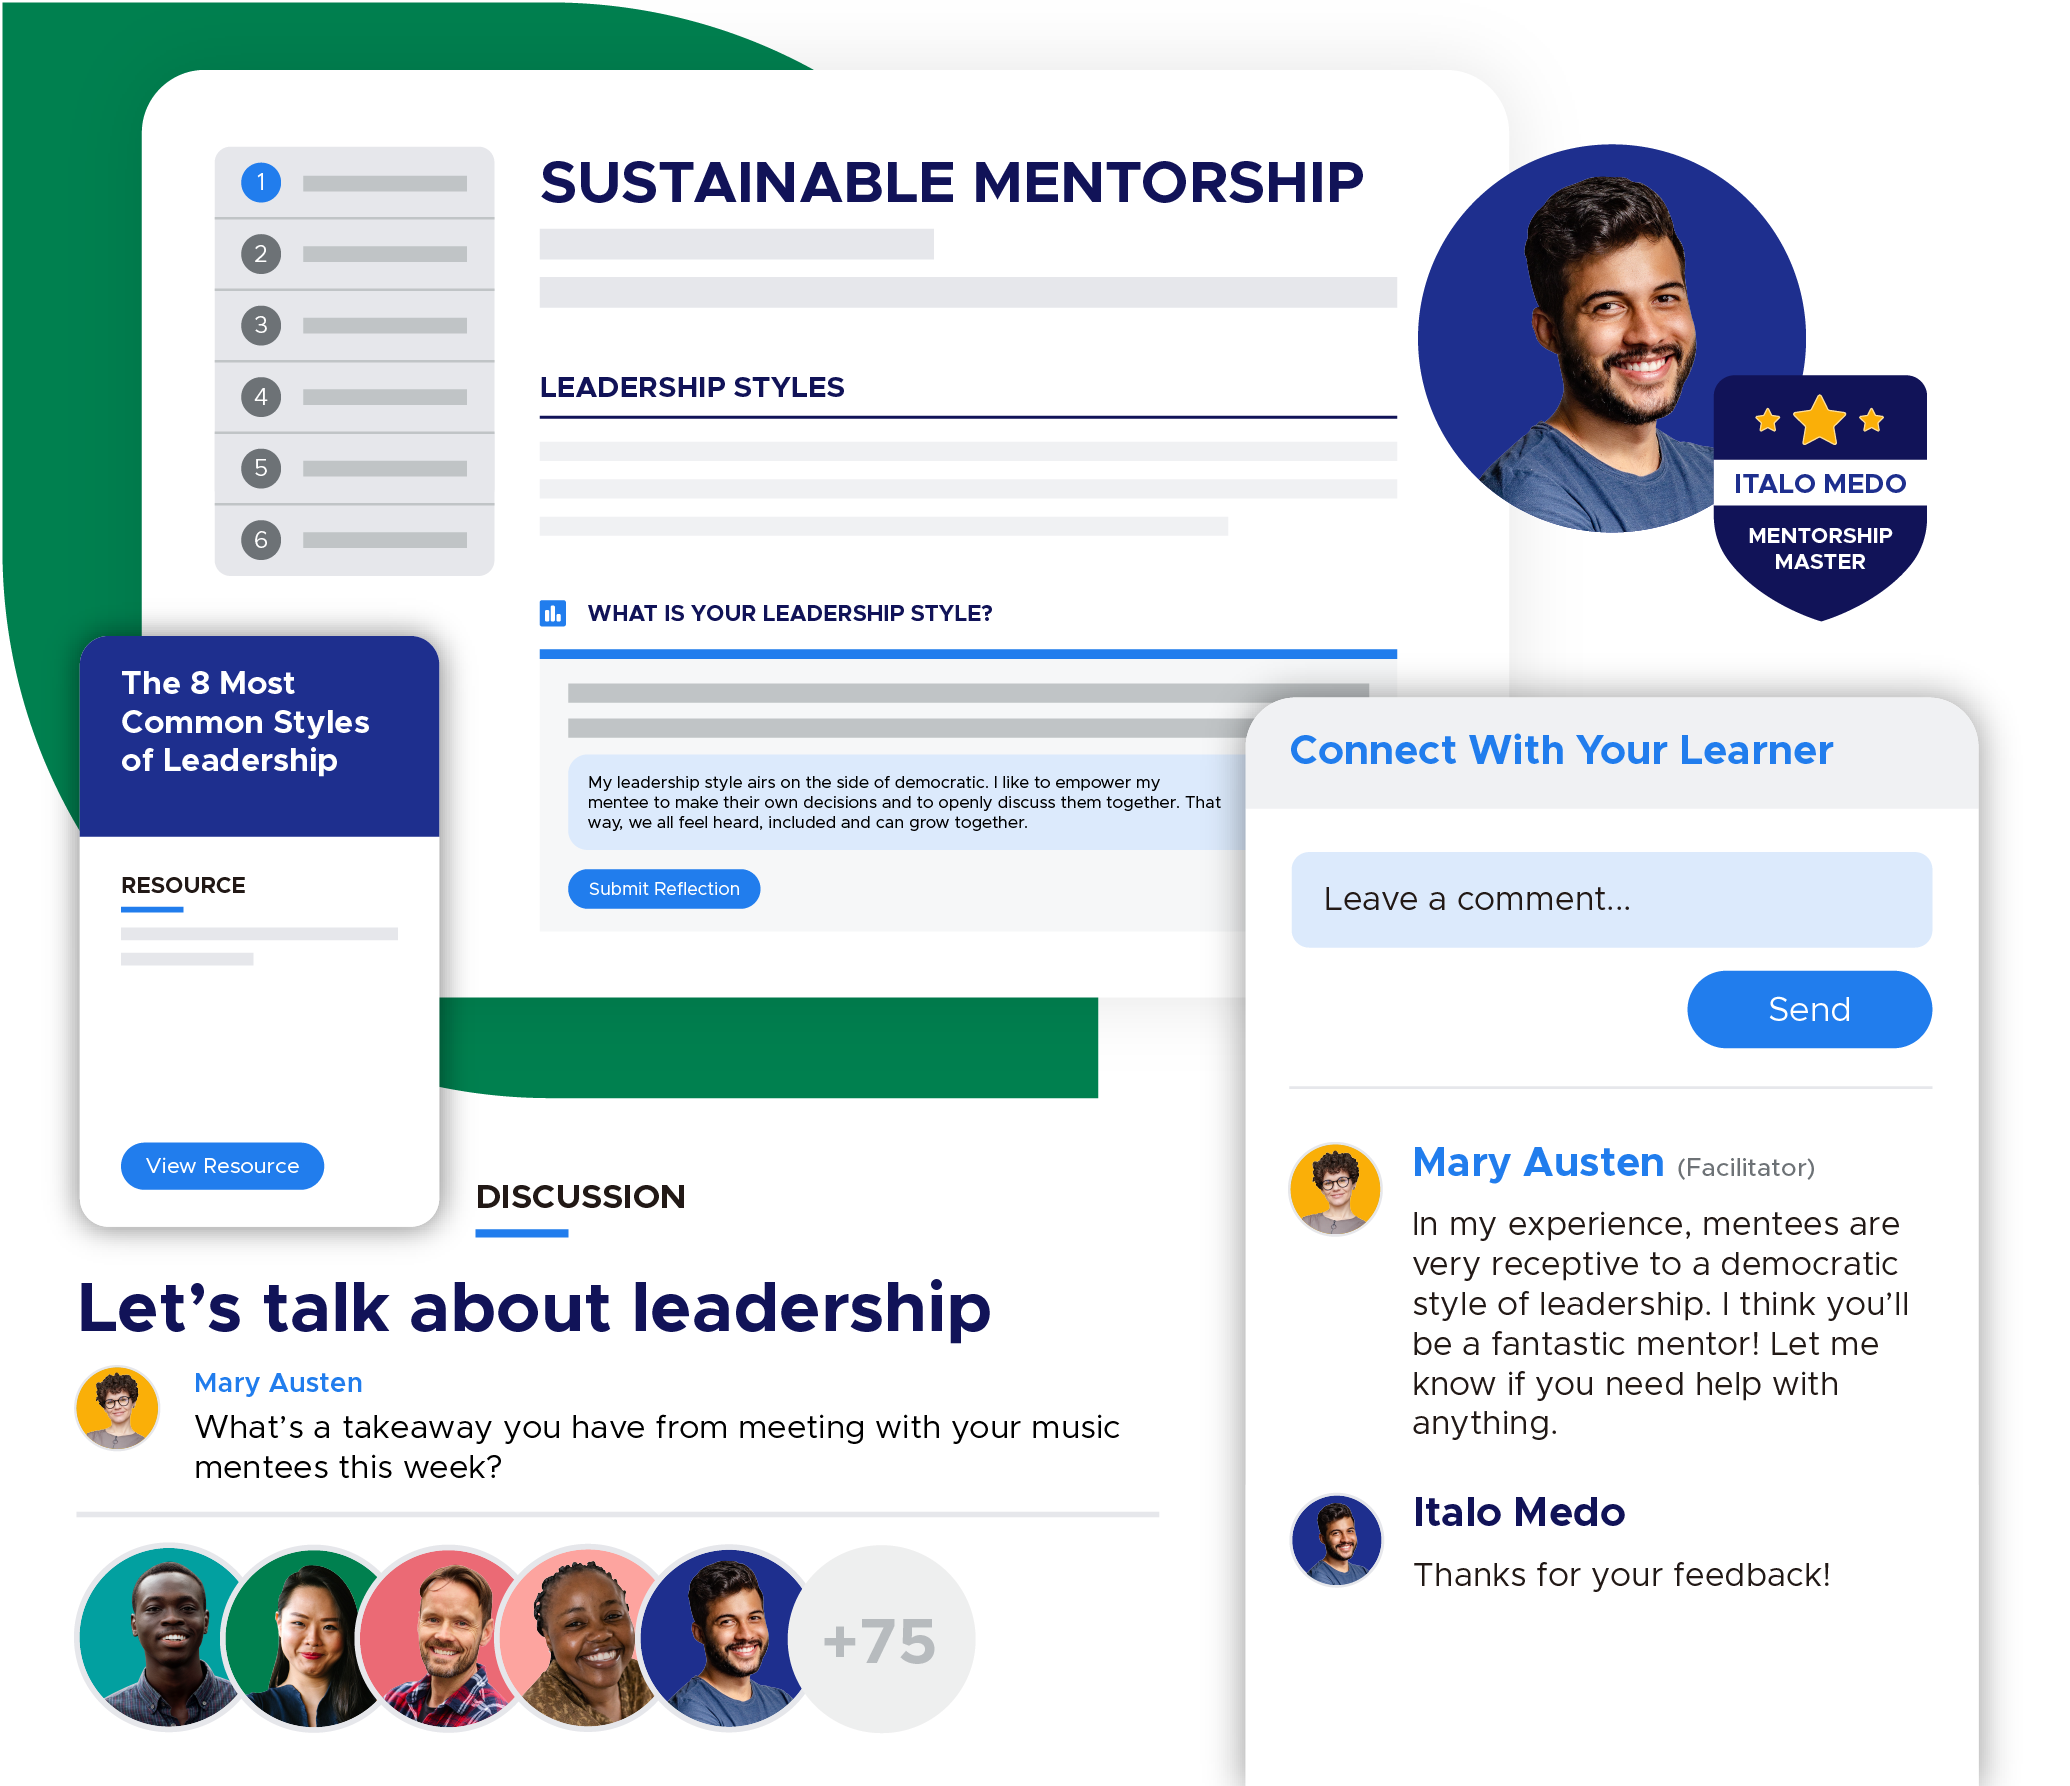 Screenshot inside a Sustainable Mentorship course that member Italo Medo is taking. In the course, he submits a reflection on his leadership style to his mentor, Mary Austen, and there is a chat bubble showing her feedback. On the left, there is a resource showing the top 8 leadership styles and a discussion in the community about leadership.